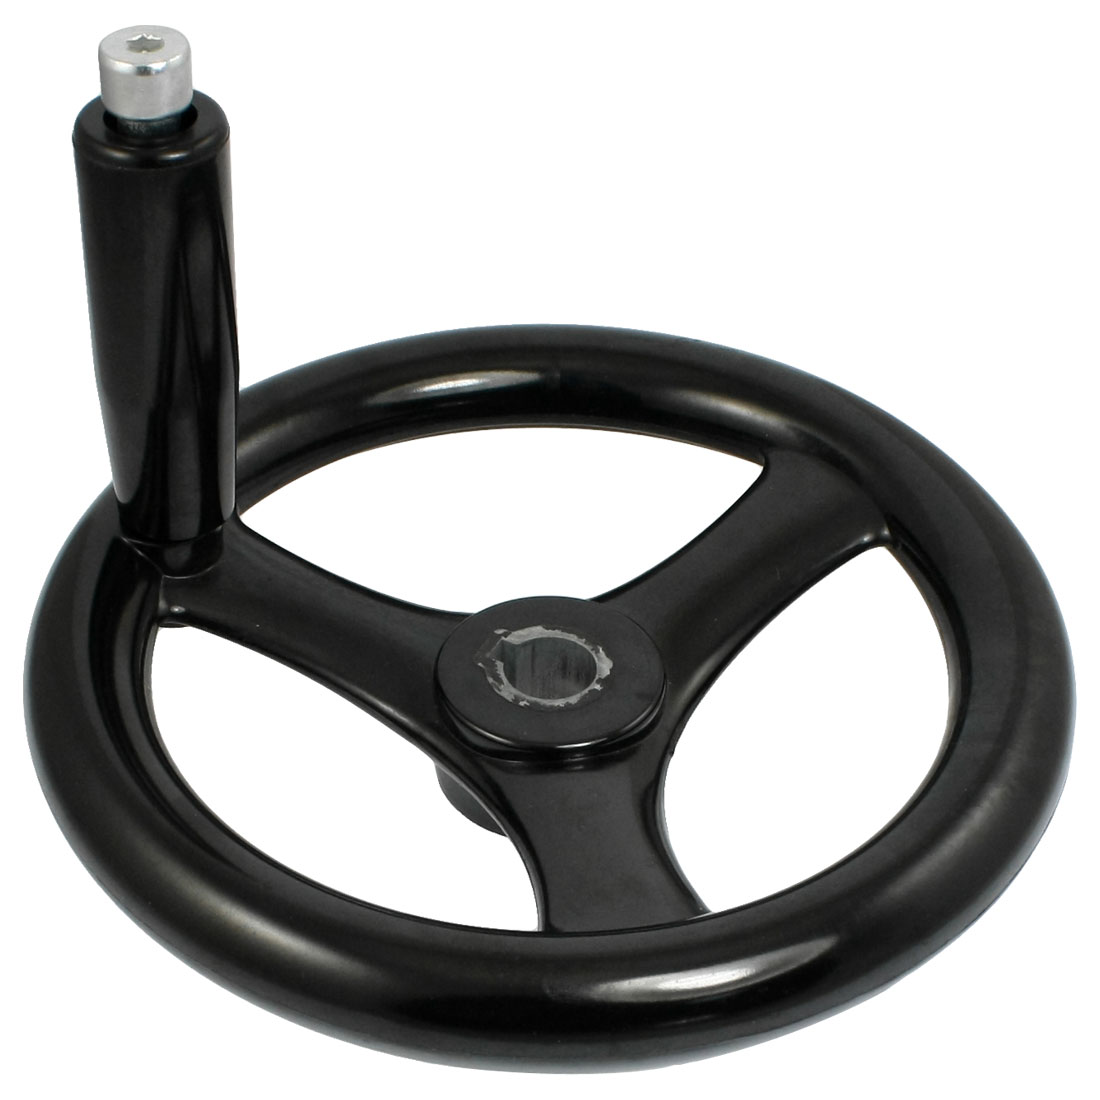 Black 17.5mm x 200mm 3 Spoke Hand Wheel w Revolving Handle